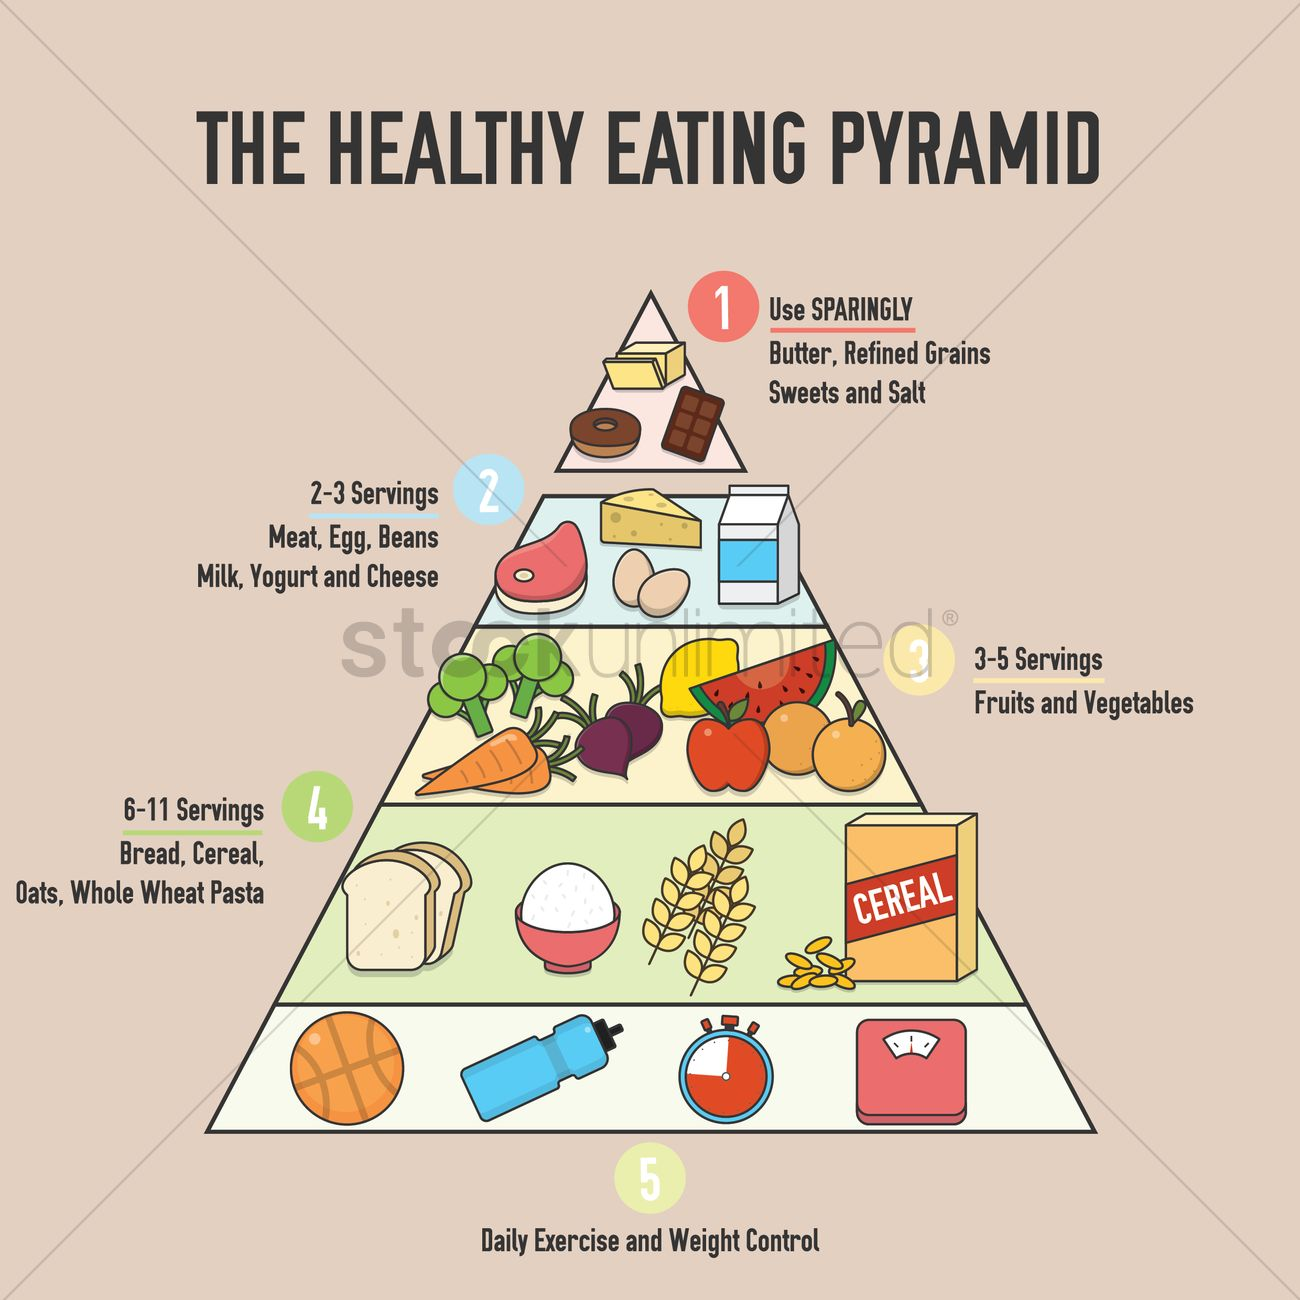 hight resolution of the healthy eating pyramid design vector image 1976093 healthy eating photographs diagram of healthy eating